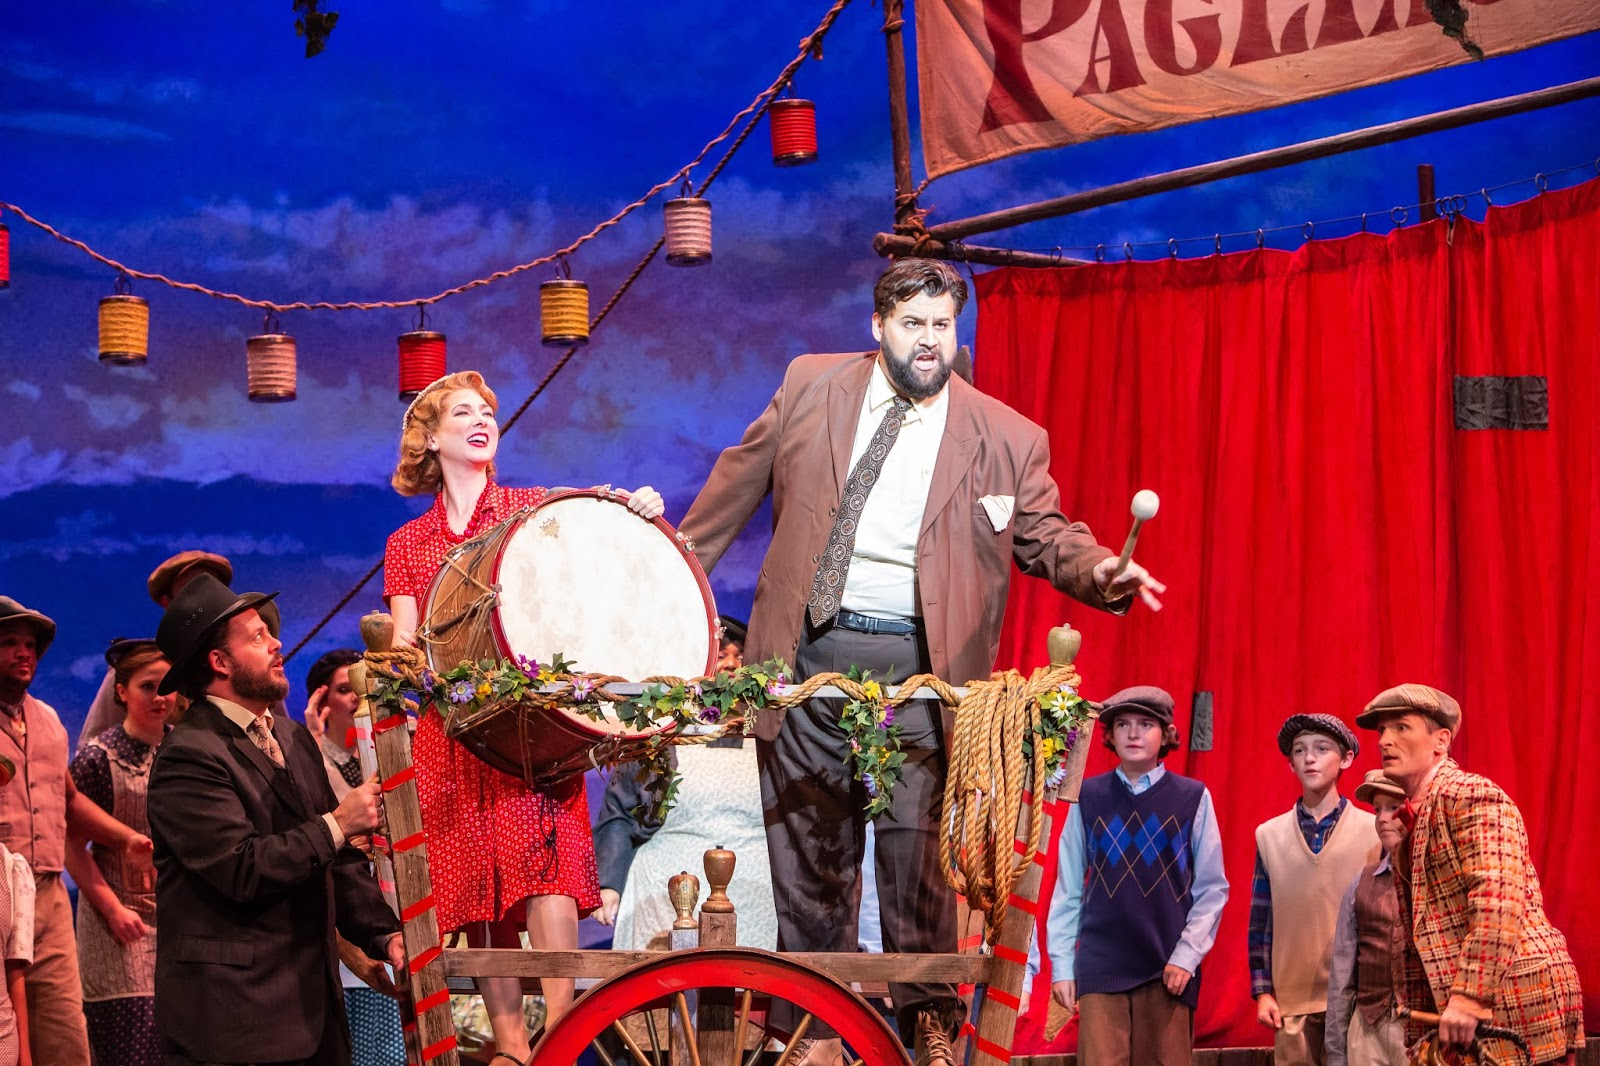 IN REVIEW: soprano SUZANNE KANTORSKI as Nedda (center left) and tenor BRANDON SCOTT RUSSELL as Canio (center right) in Greensboro Opera's November 2019 production of Ruggero Leoncavallo's PAGLIACCI [Photograph by Becky VanderVeen, © by VanderVeen Photography & Greensboro Opera]